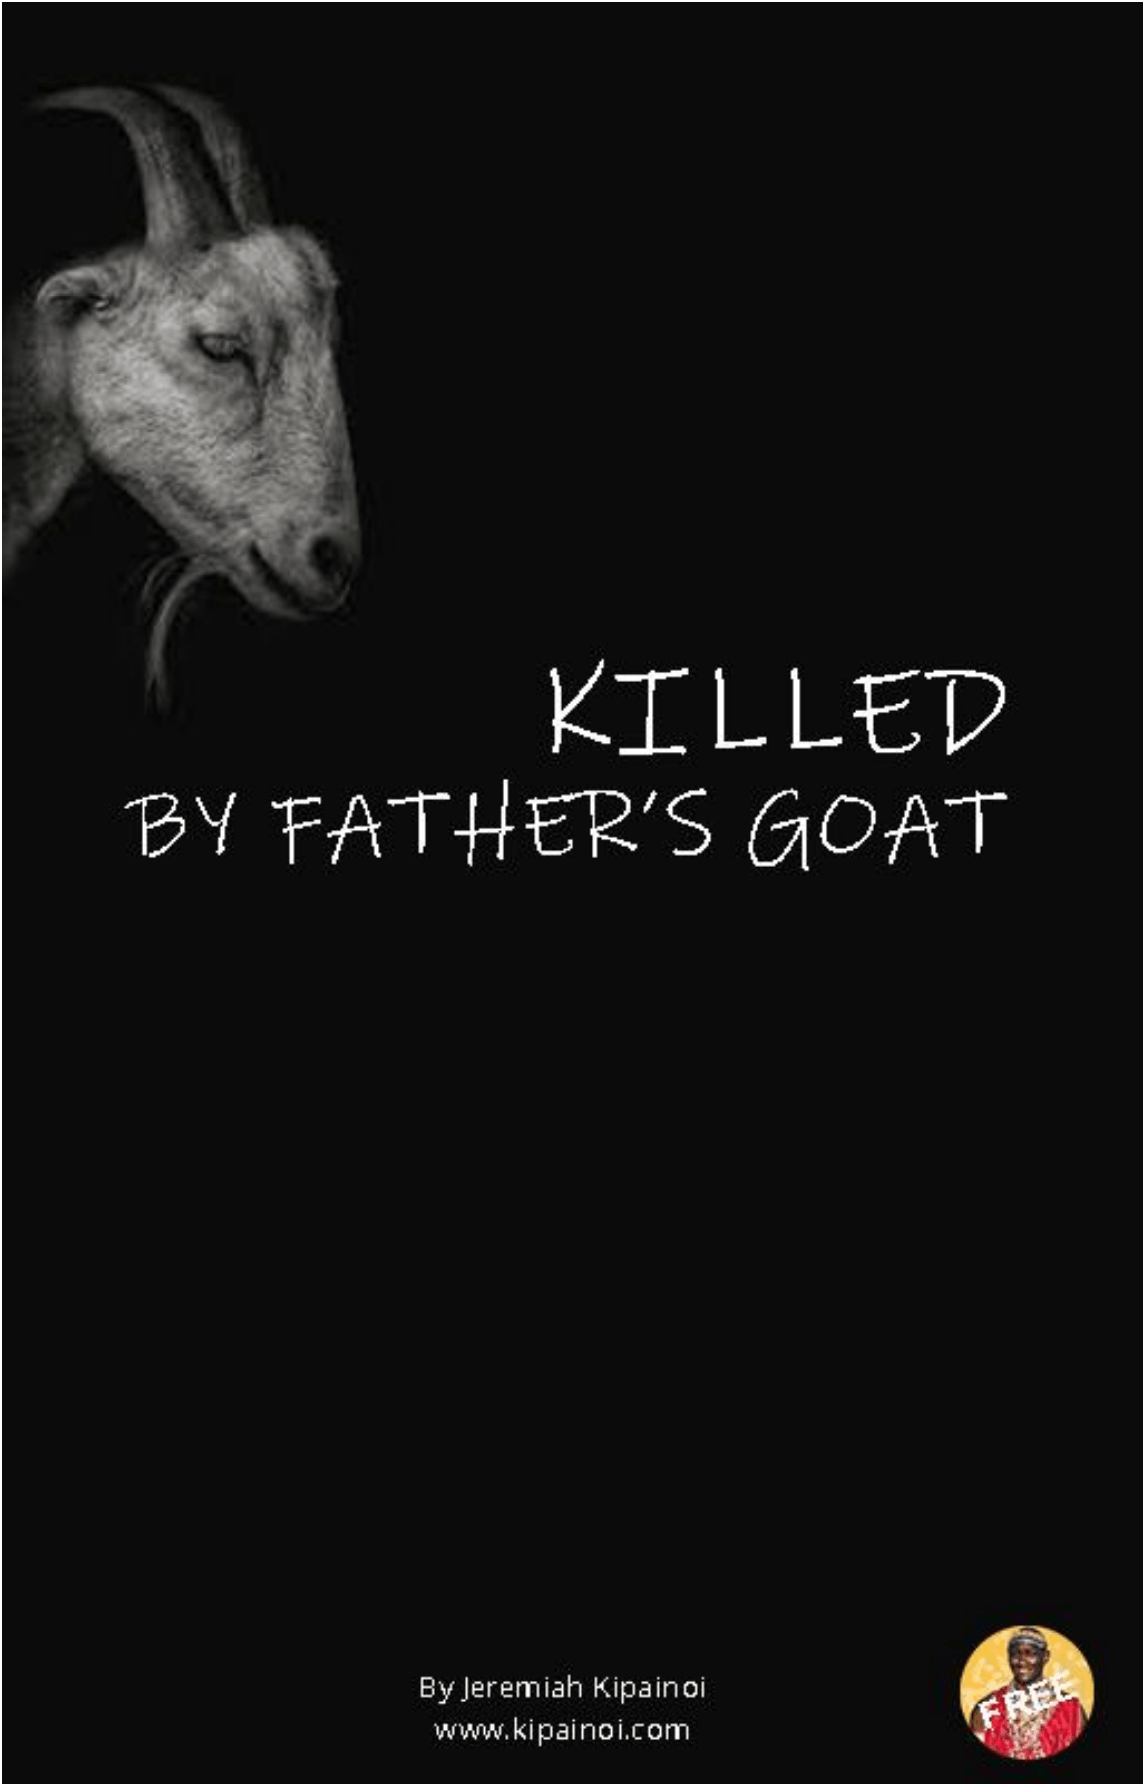 Killed by father's goat